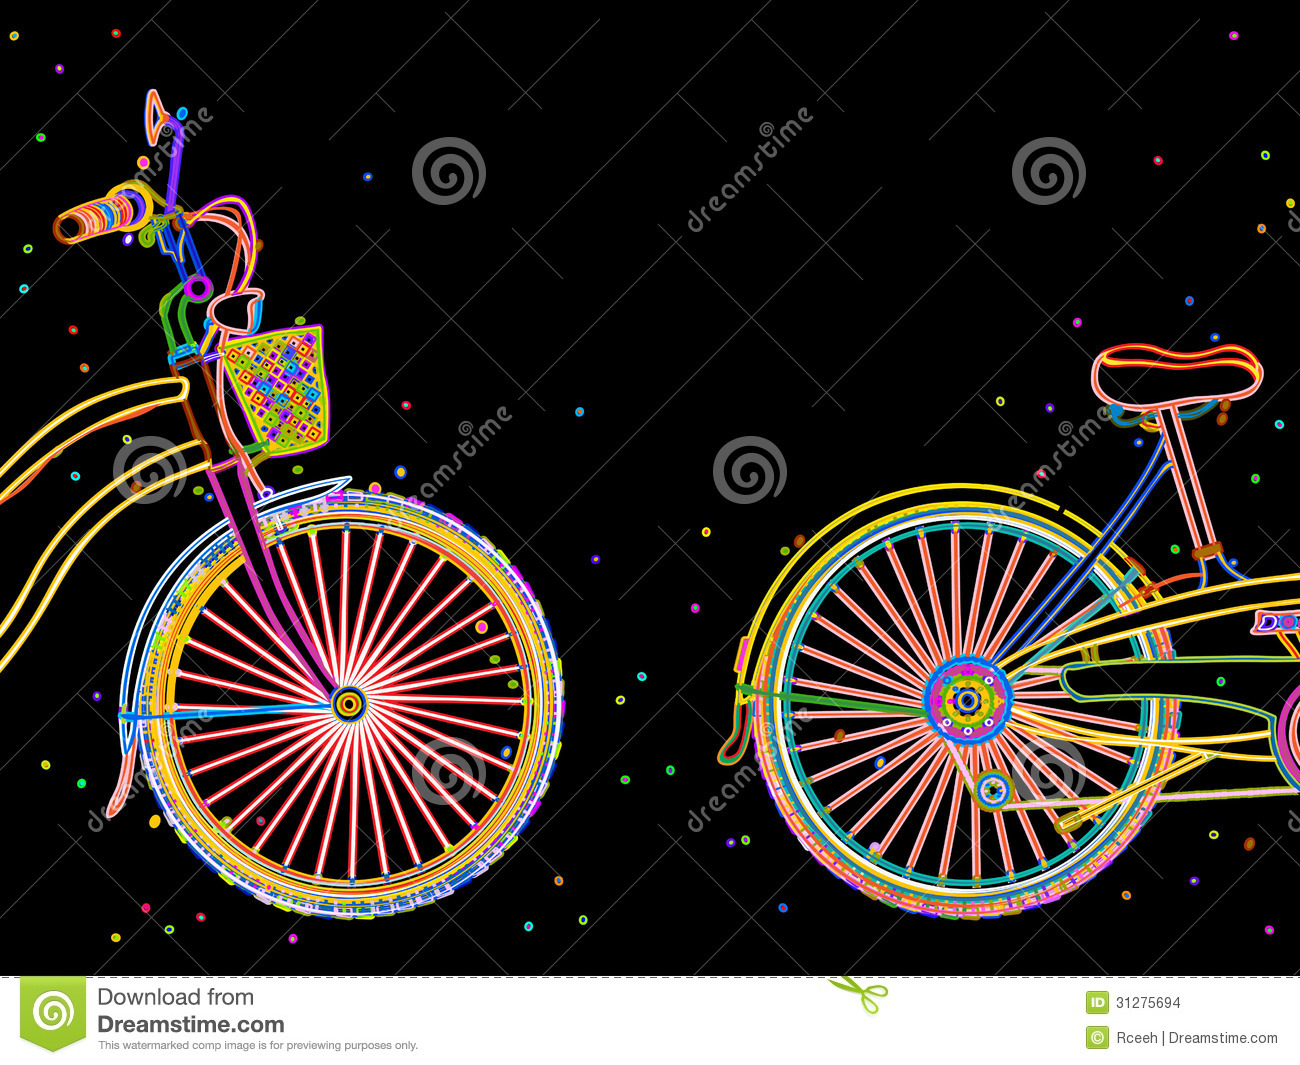 Bicycle illustration retro - photo#19